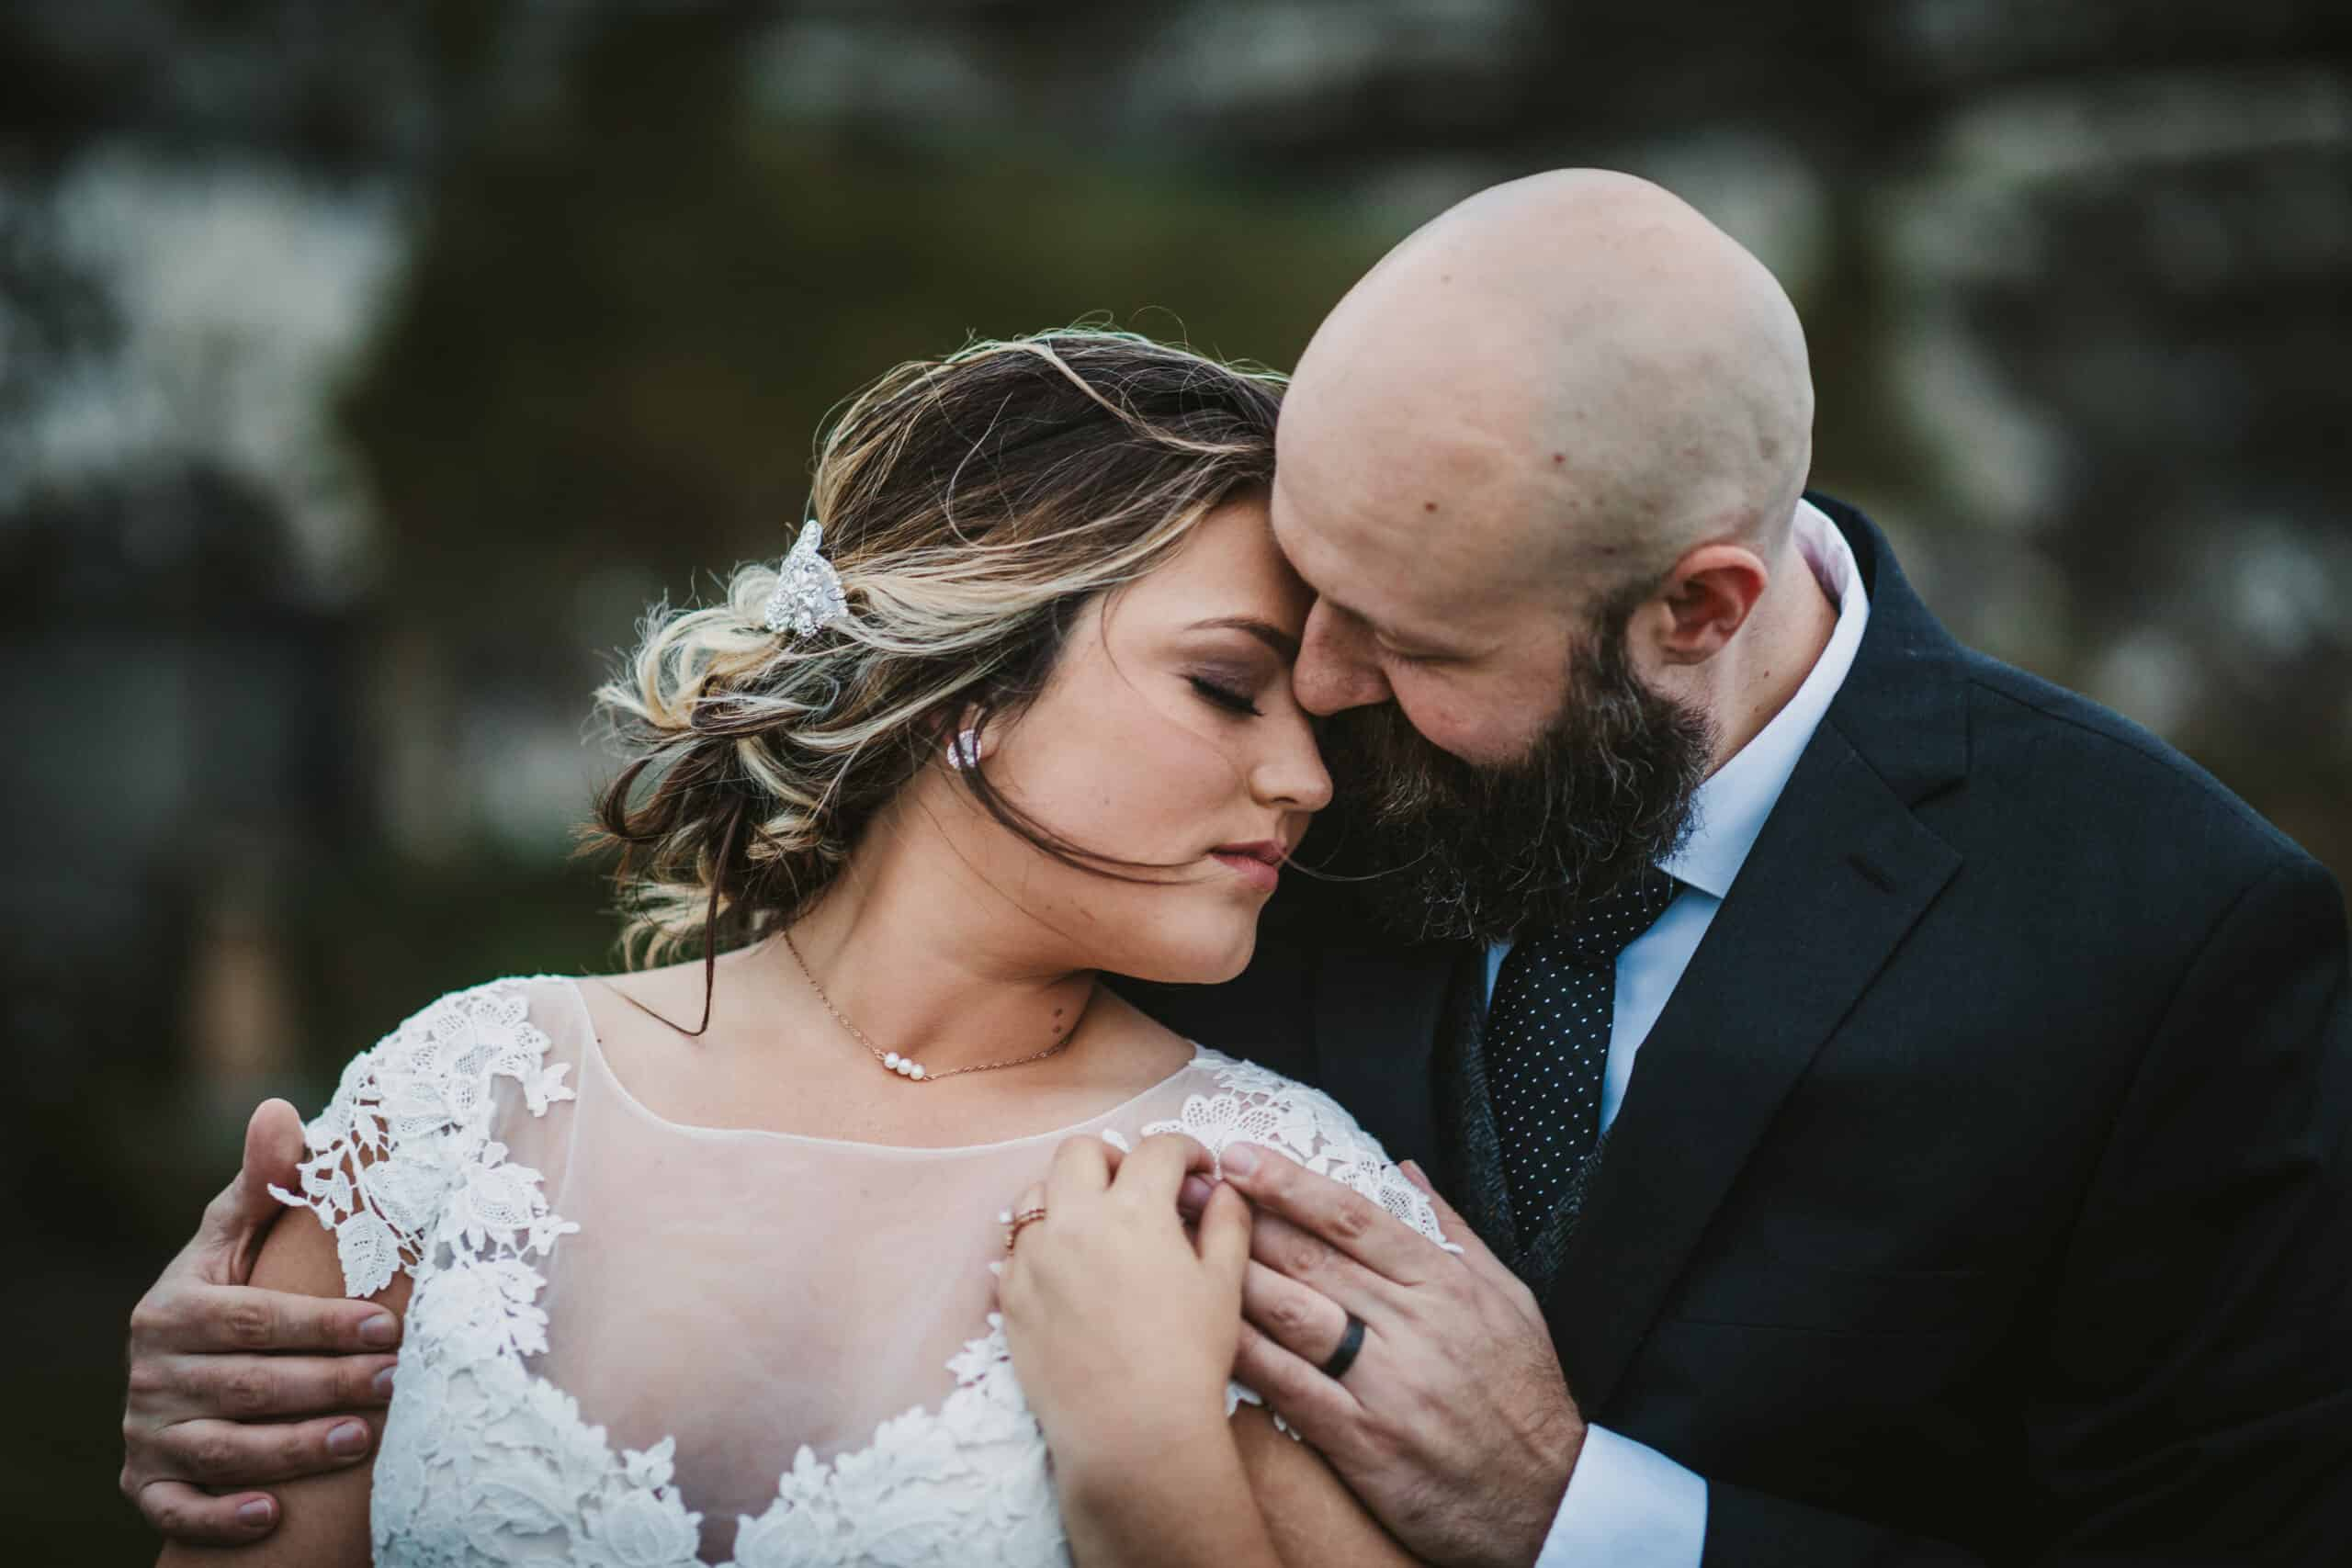 Cliffs of Moher Wedding Hags head, emotional photo of bride and groom